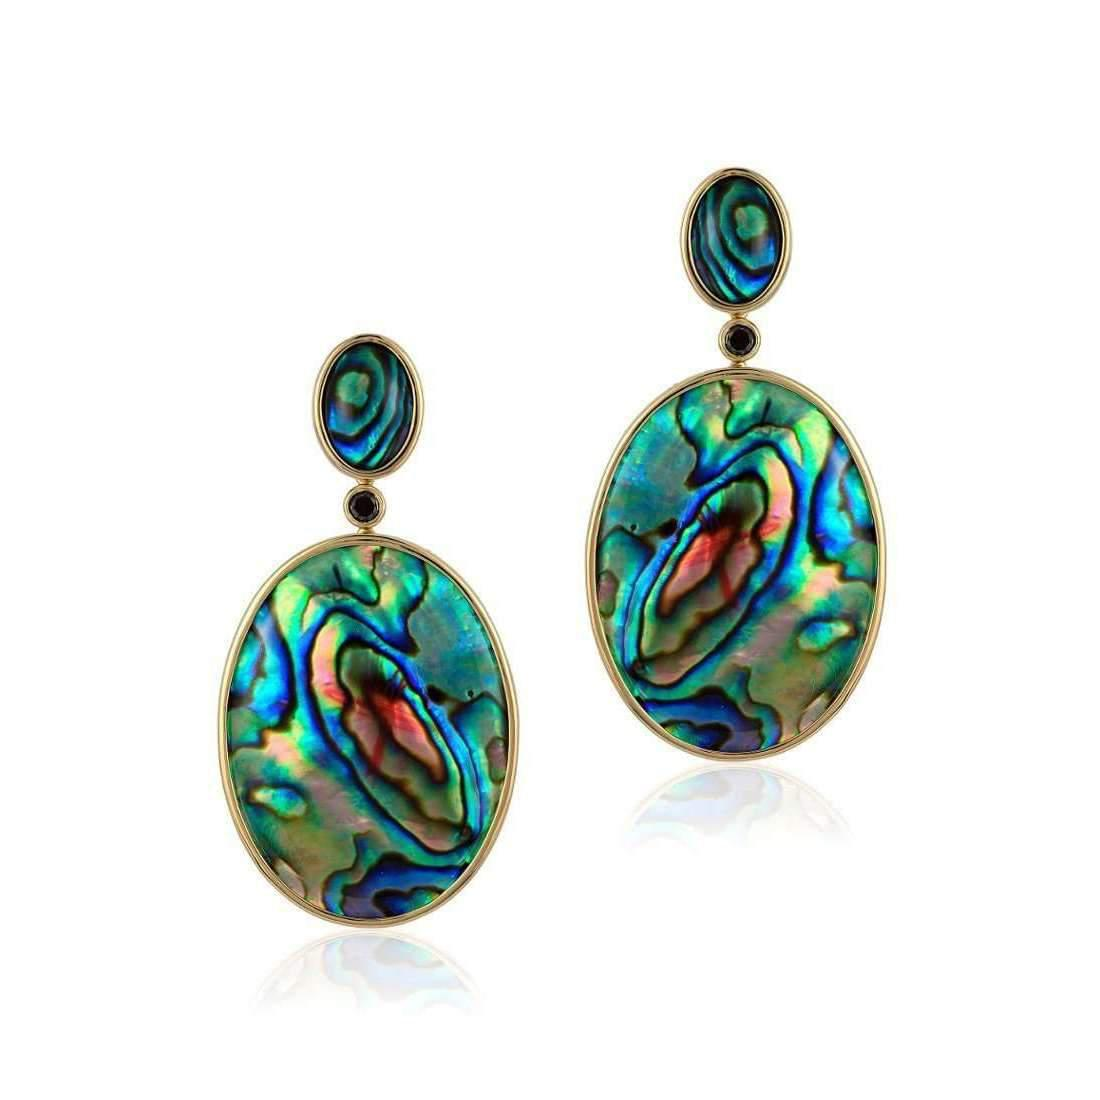 Goshwara Mother Of Pearl Oval Abalone Shell Earrings VZSN1HV